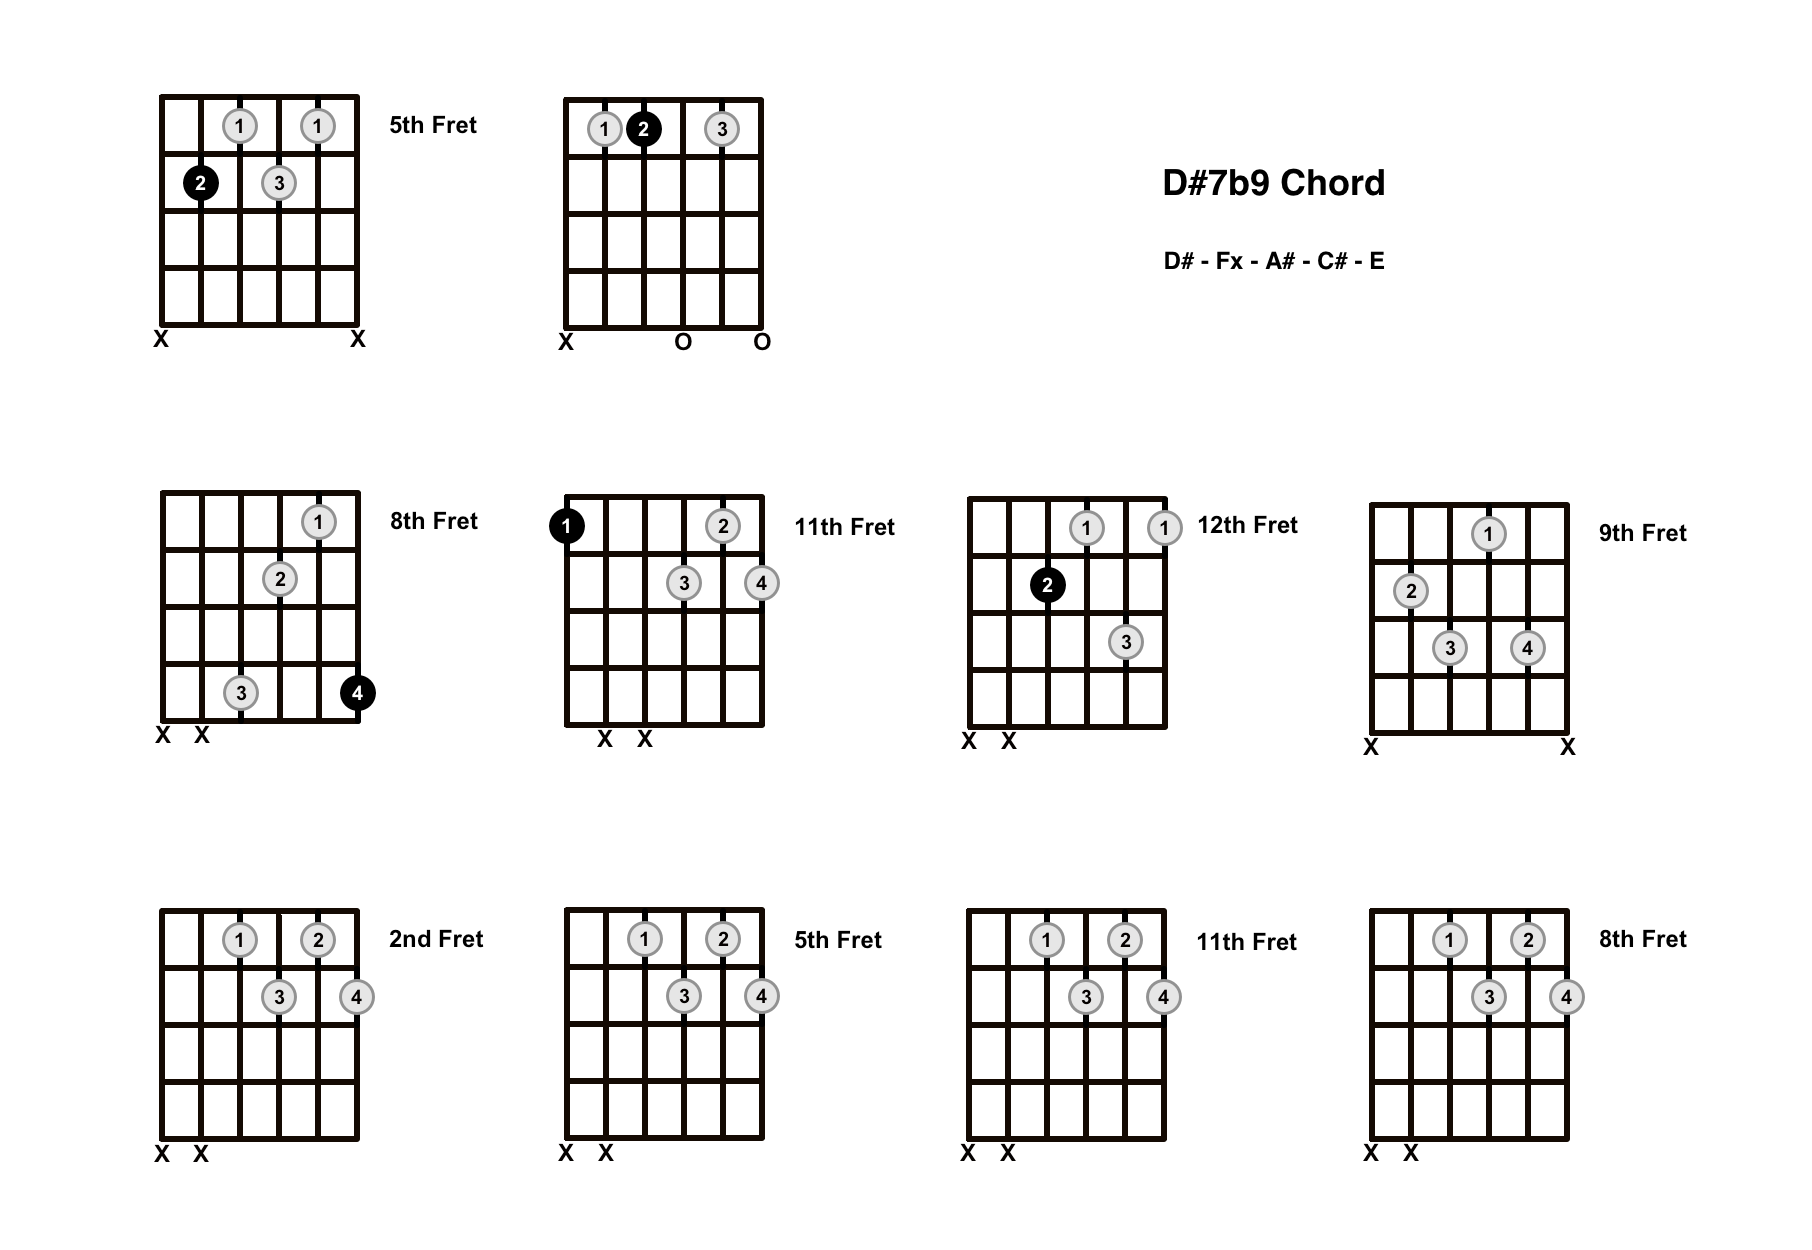 D#7b9 Chord On The Guitar (D Sharp 7 Flat 9) – Diagrams, Finger Positions and Theory